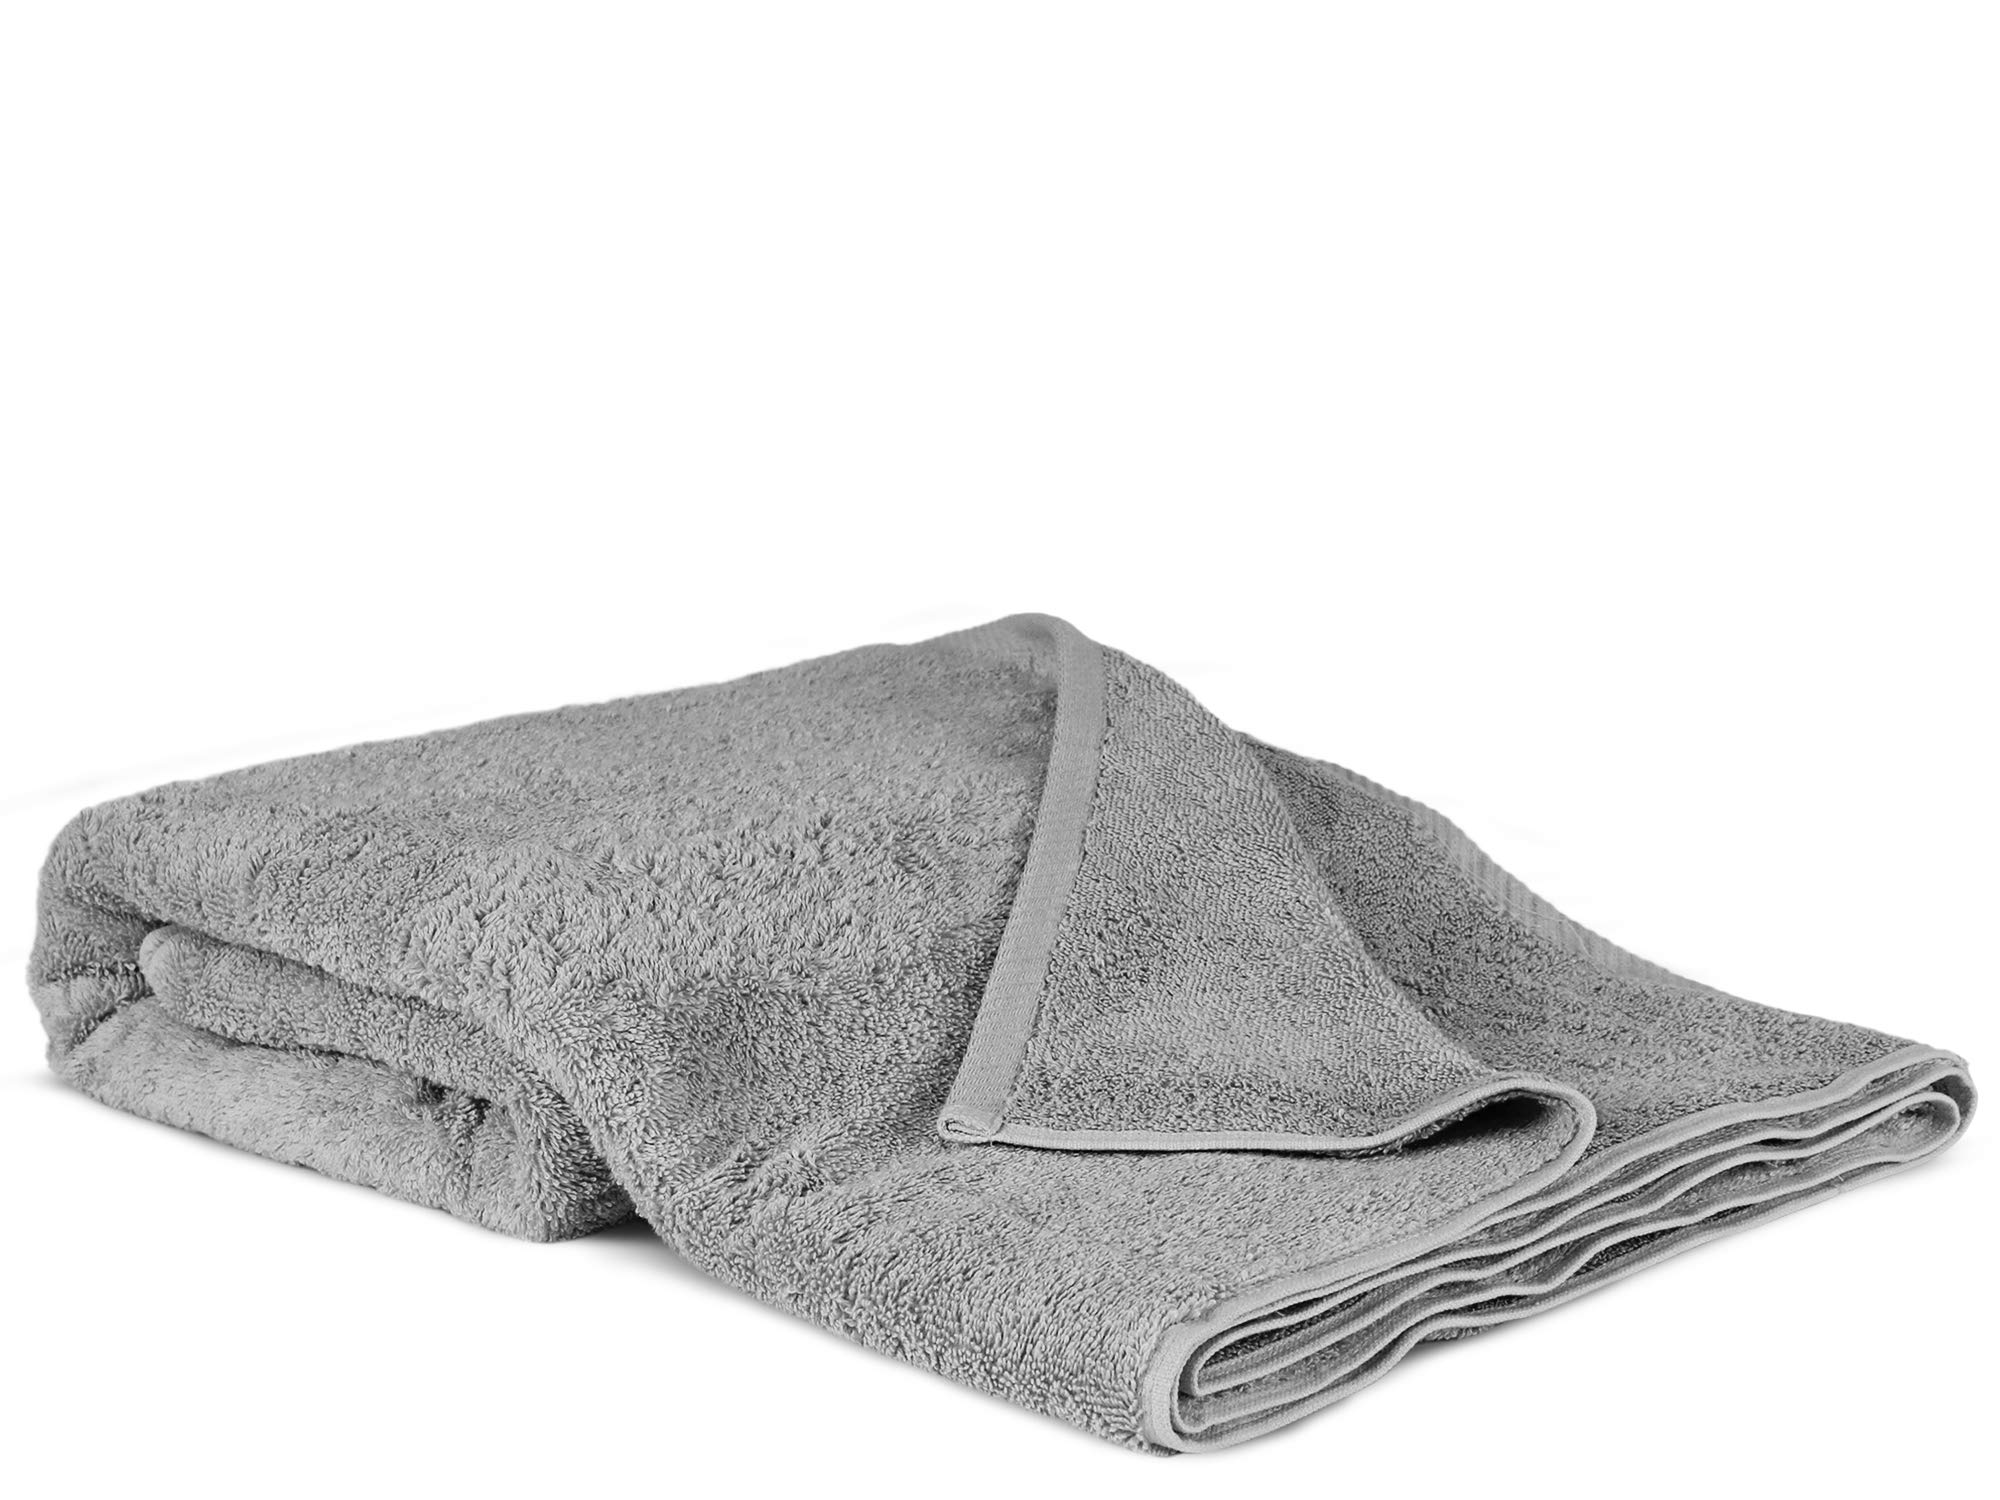 100% Luxury Turkish Cotton, Eco-Friendly, Soft and Super Absorbent Oversized 40'' x 80'' Bath Sheet (Gray, 1 Piece)